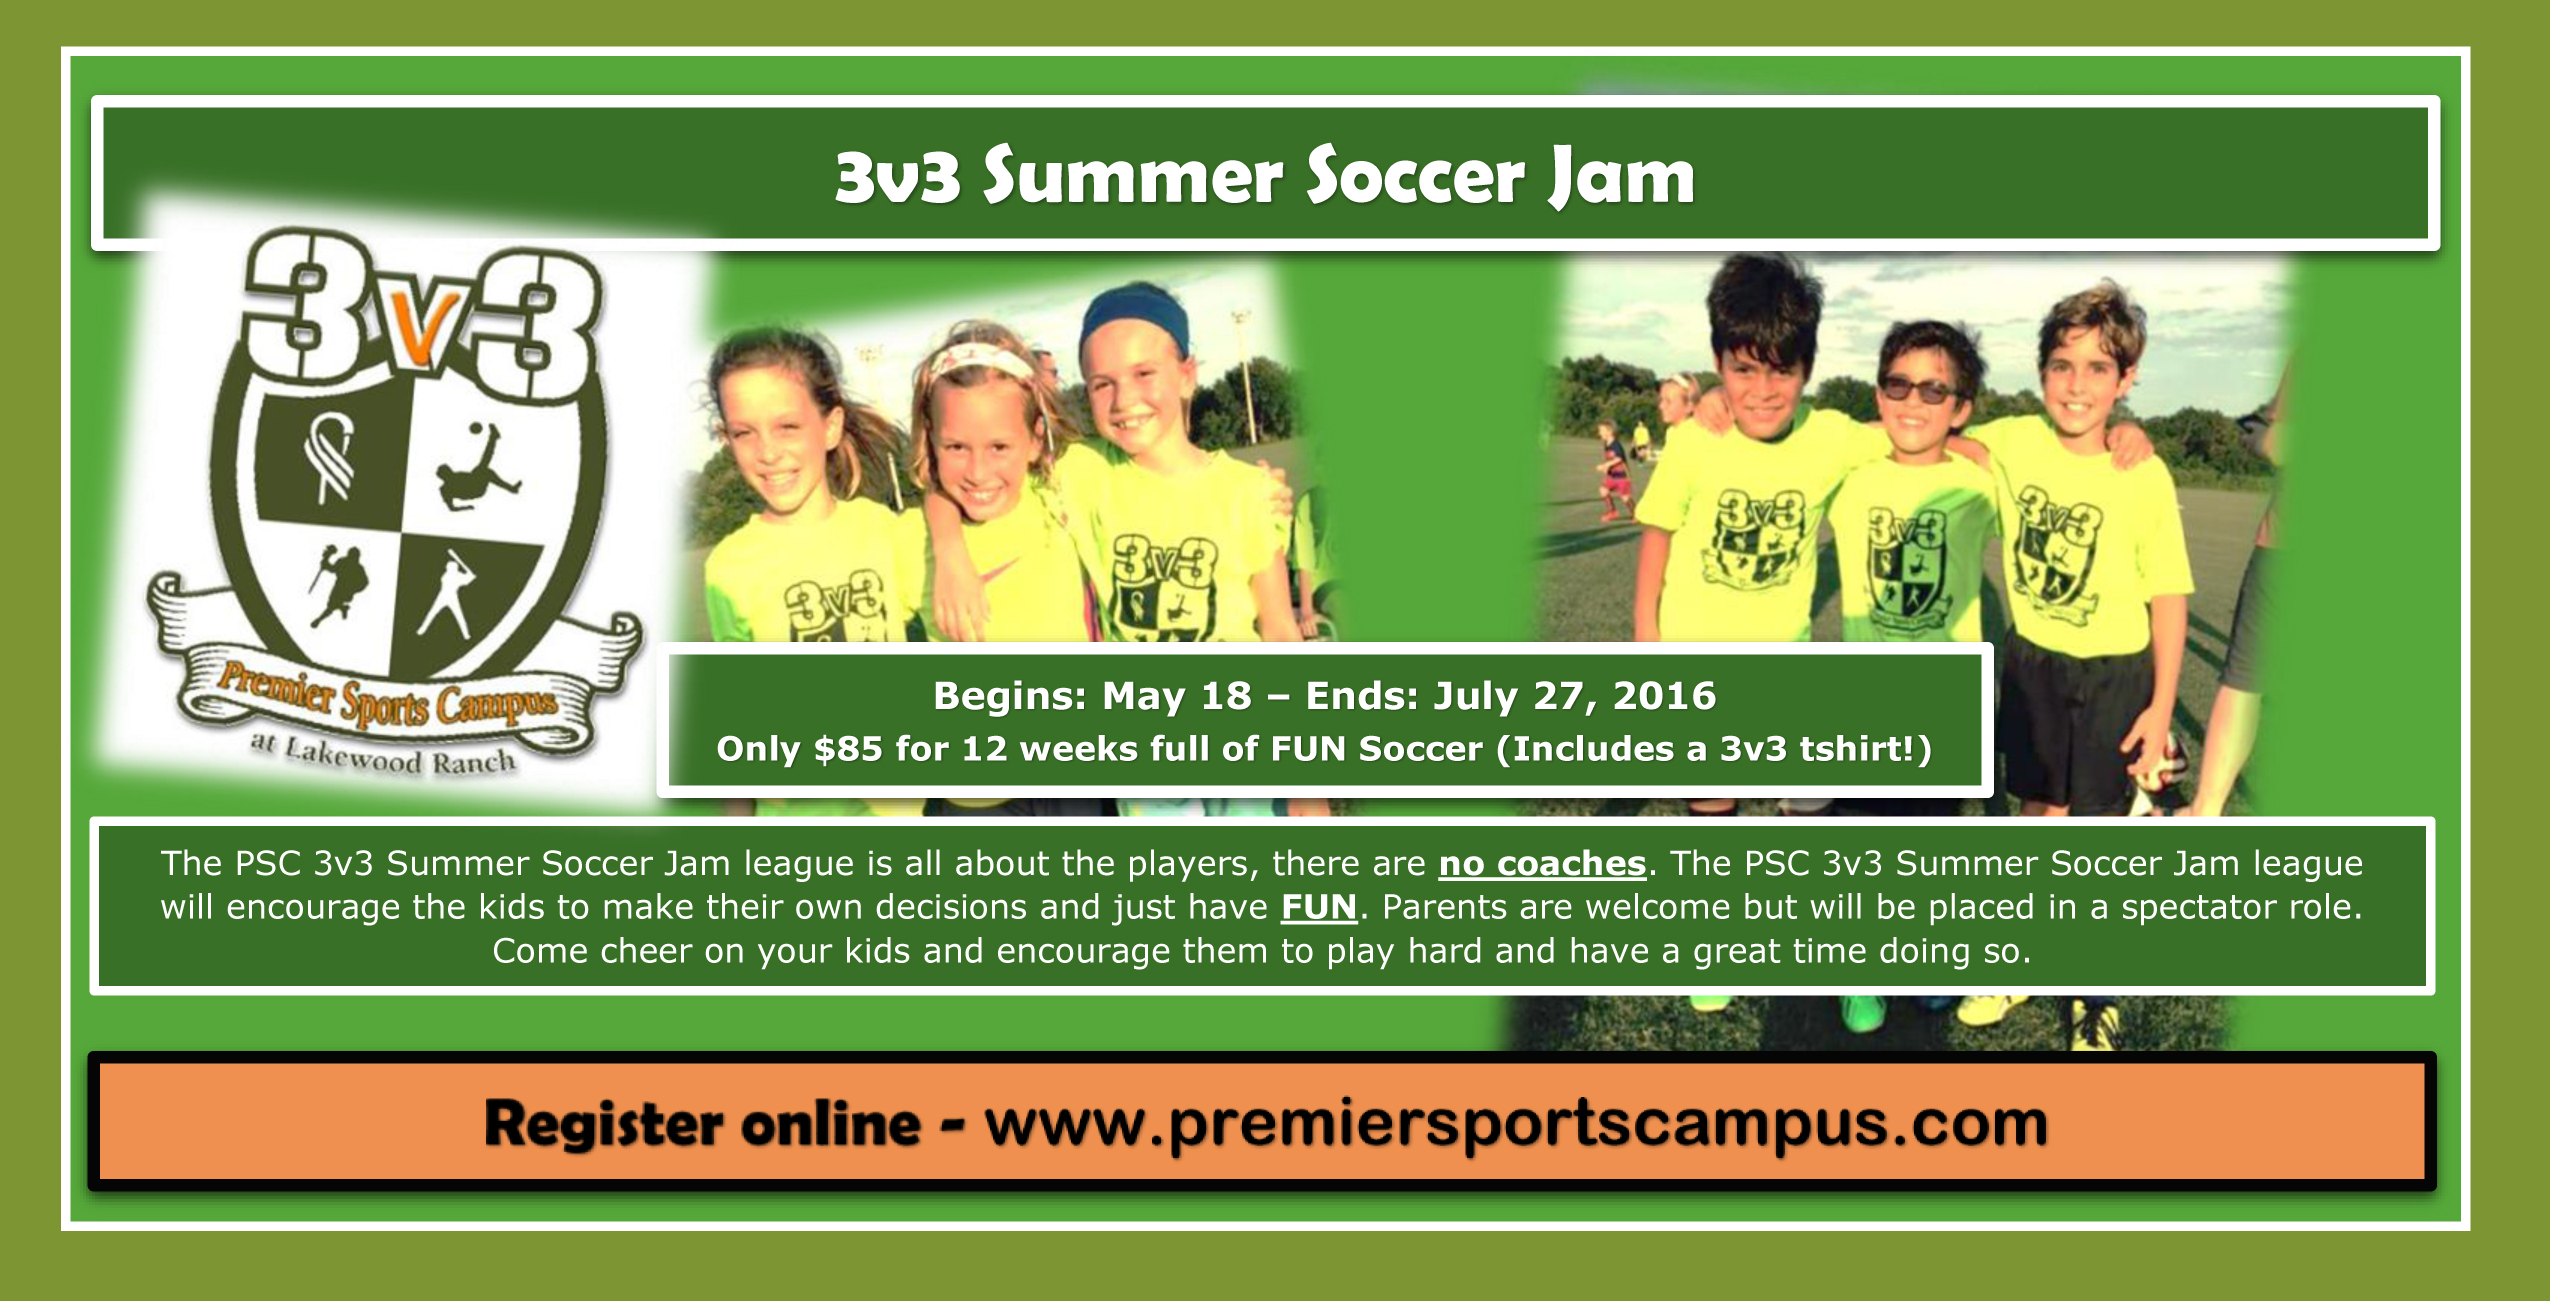 Premier Sports Campus 3v3 Summer Soccer Jam